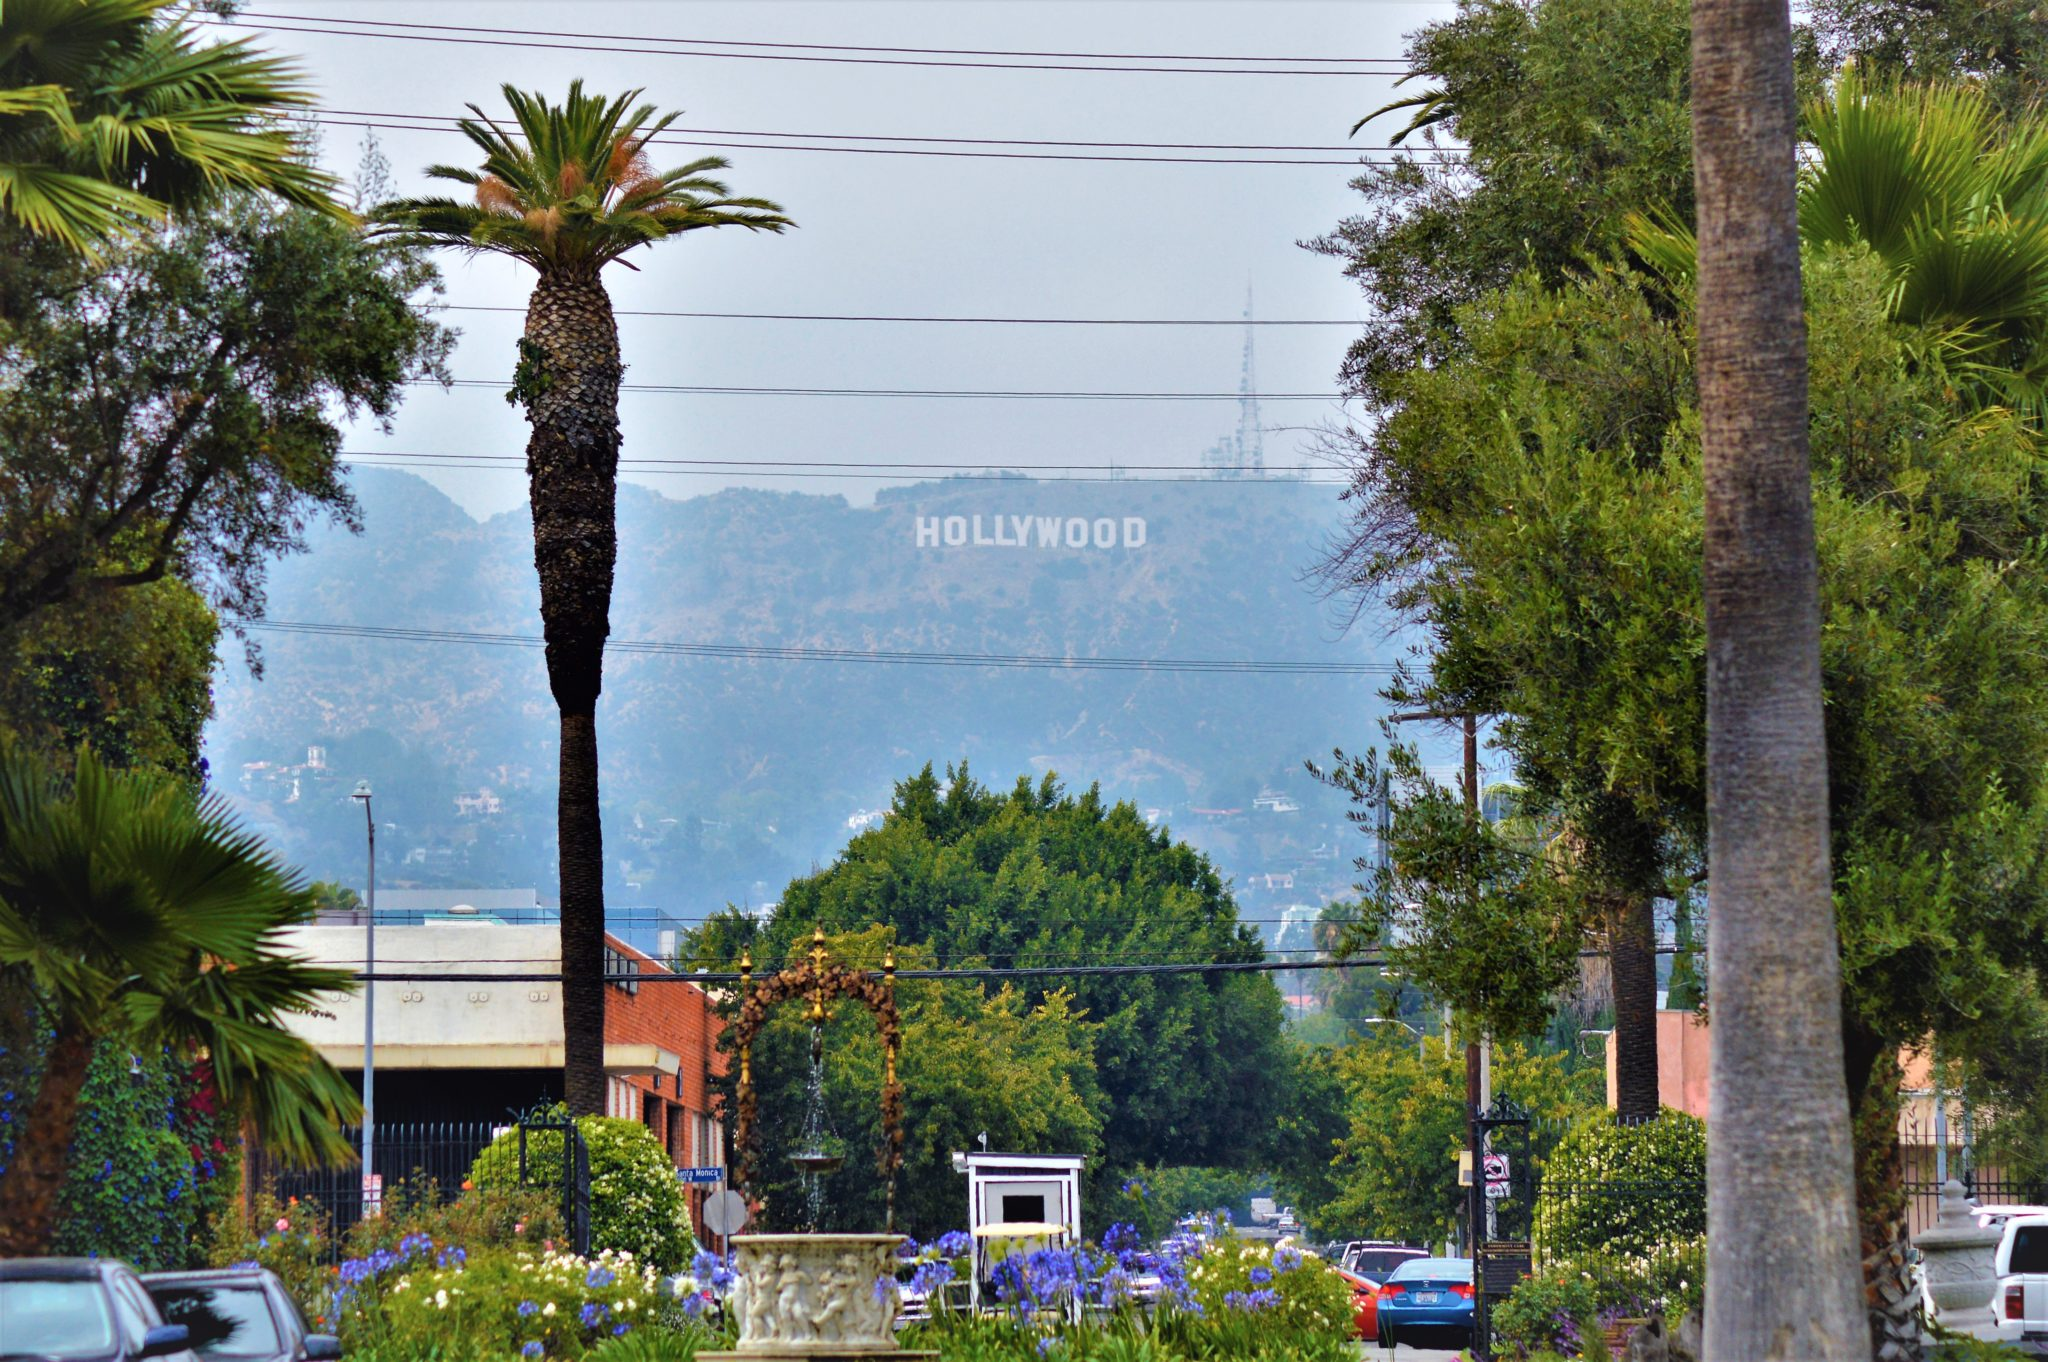 Hollywood sign, free things to see in los angeles